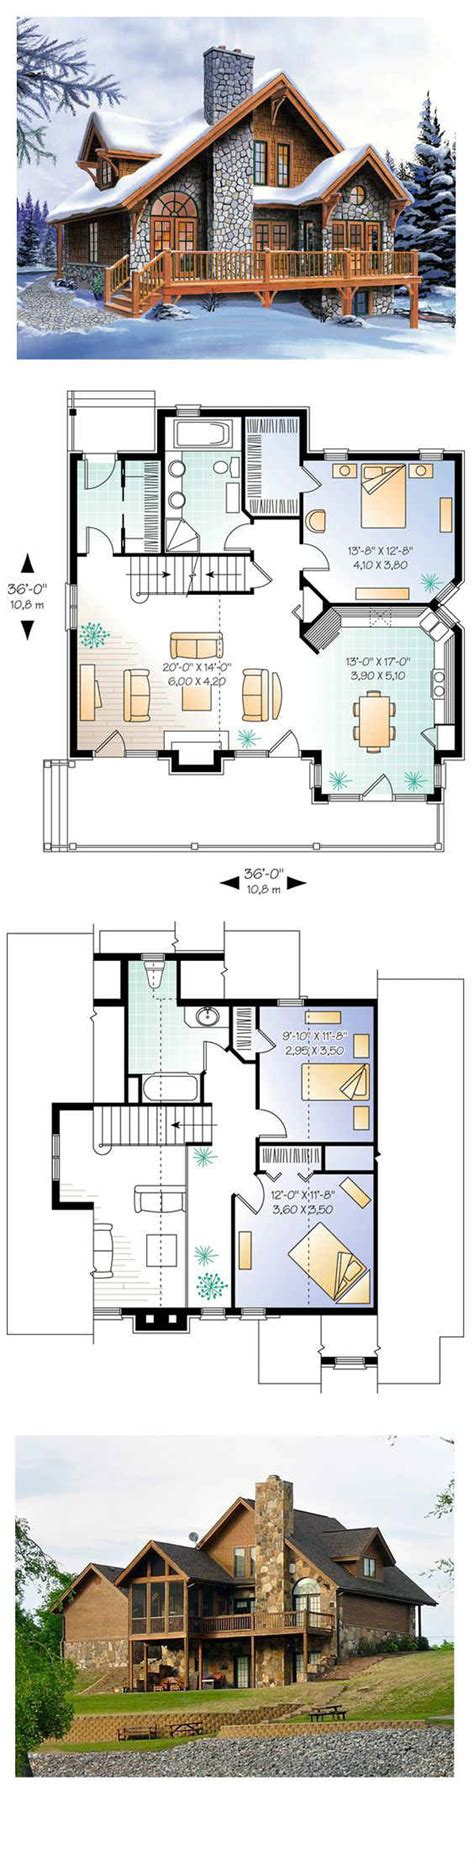 types of house plans different type of house plans house plans